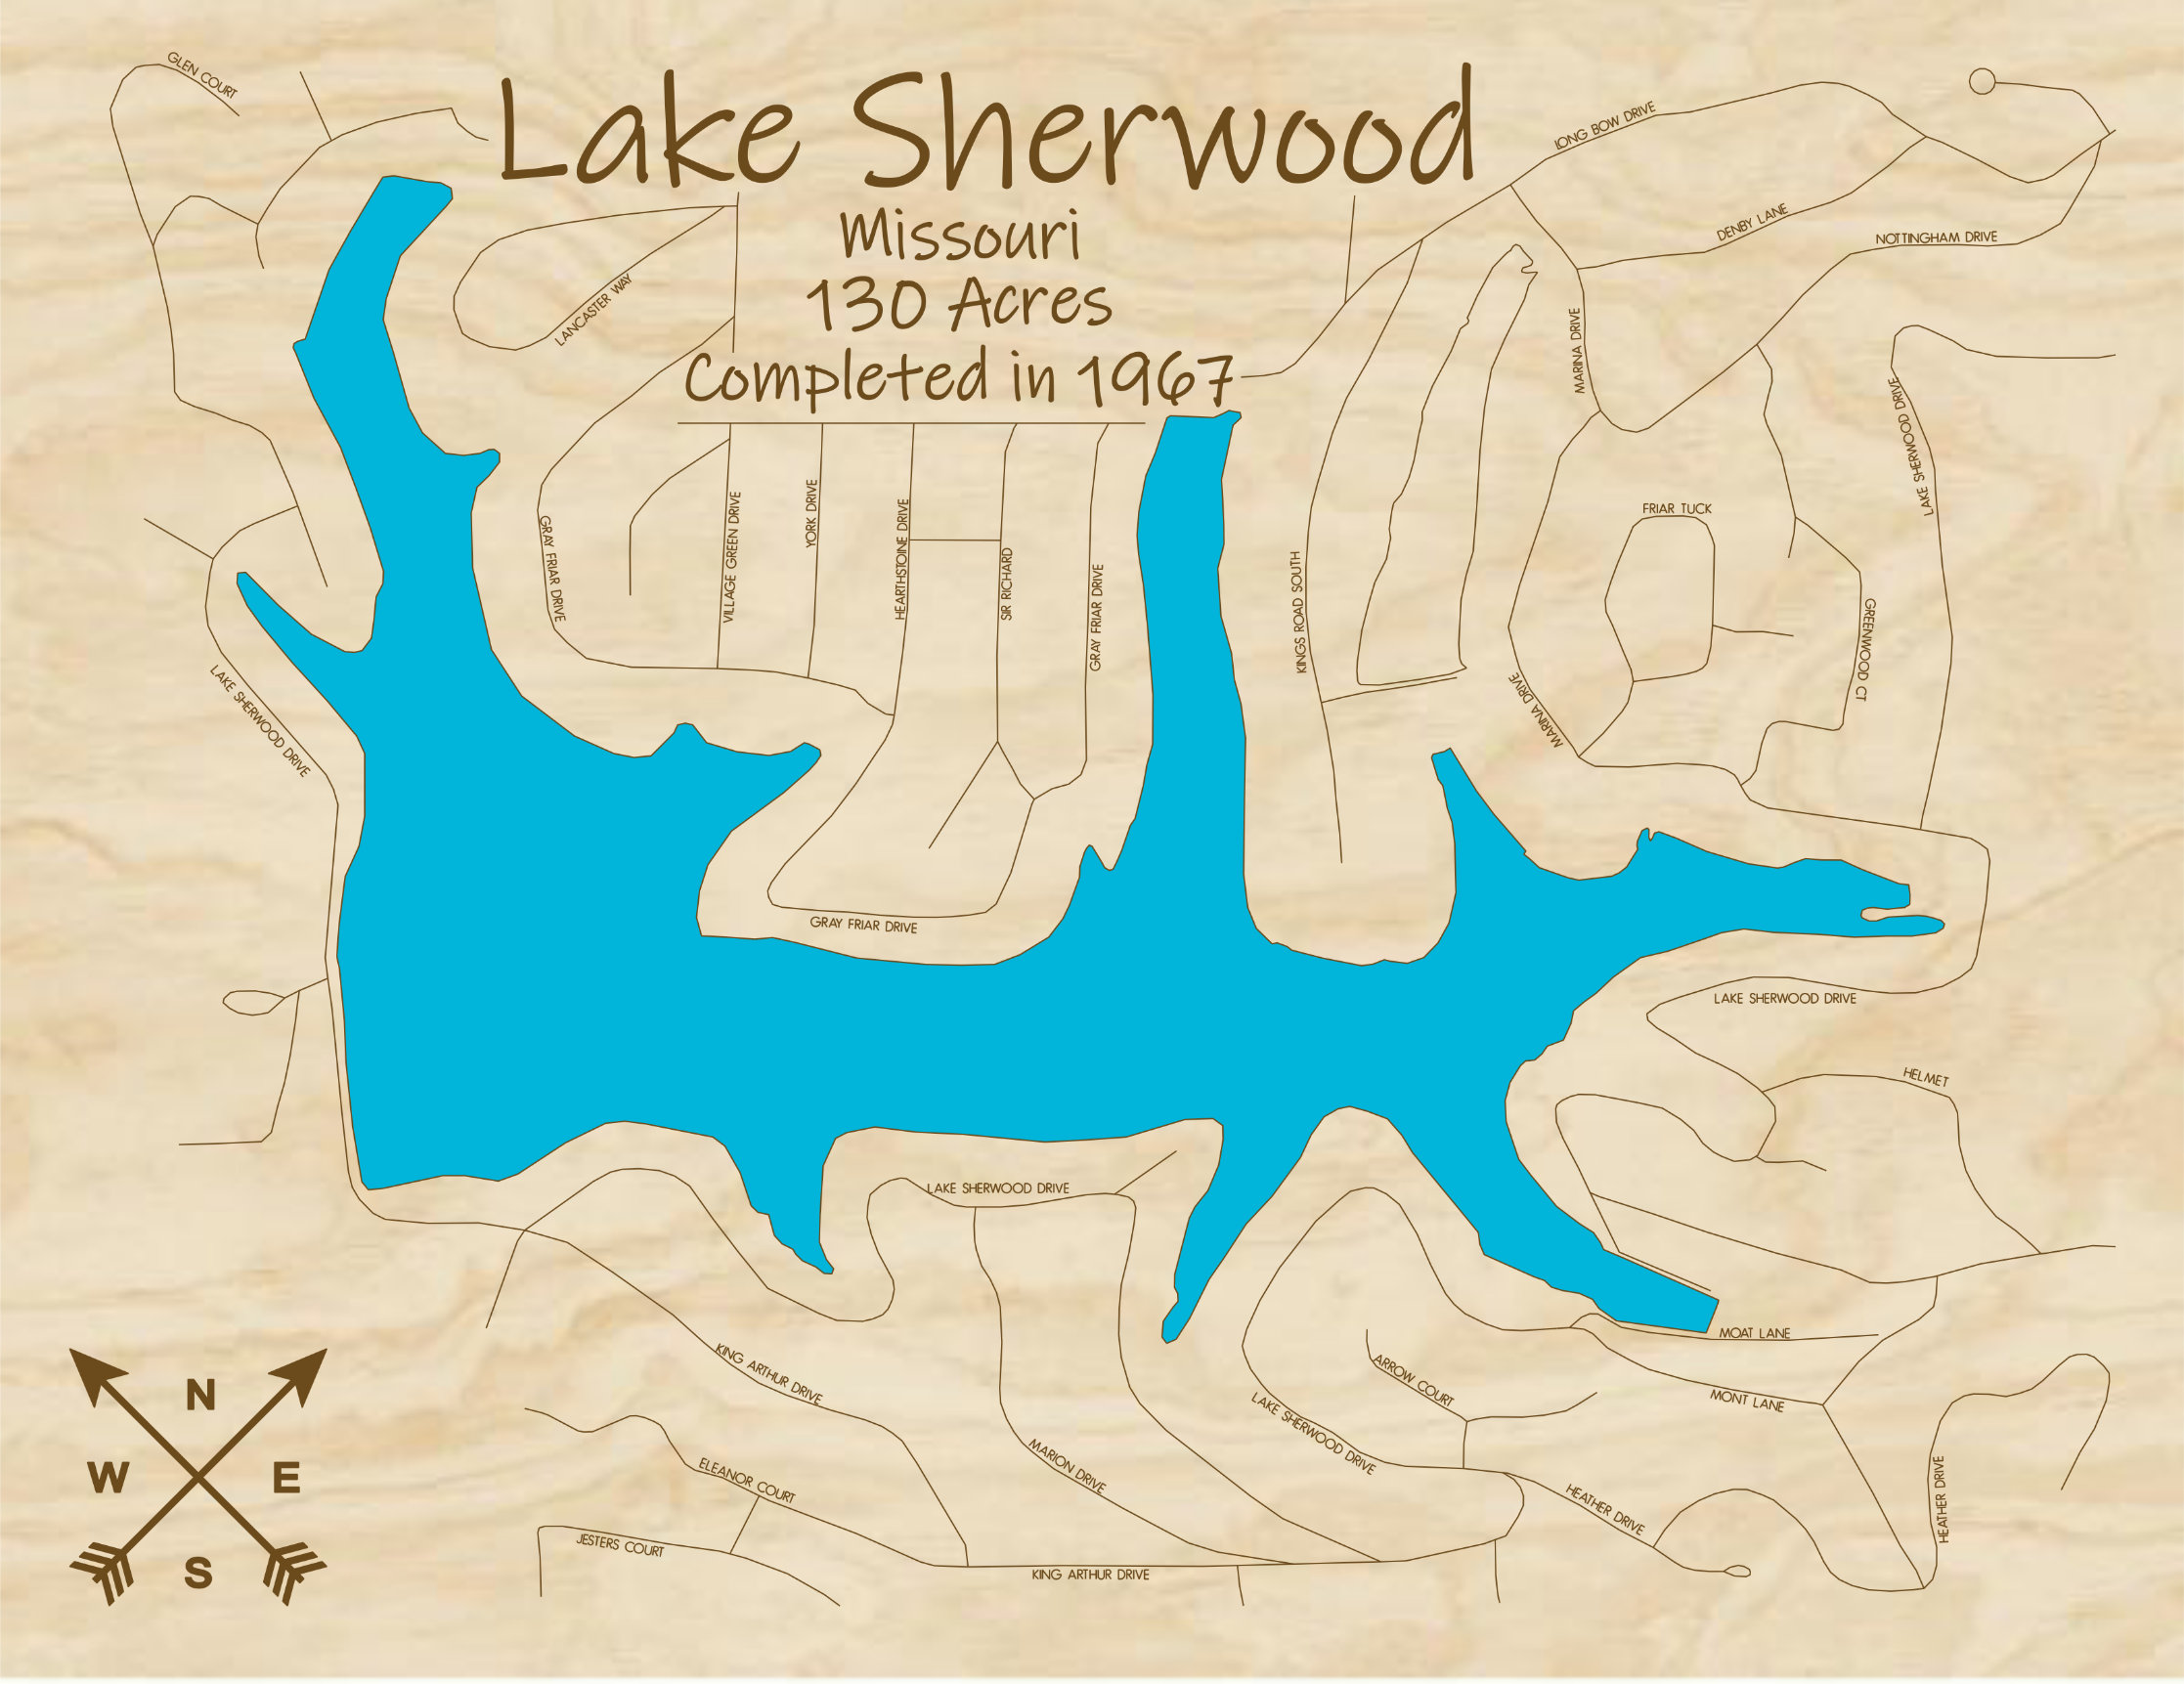 Lake Sherwood Muti-layered Wood Lake Mapo